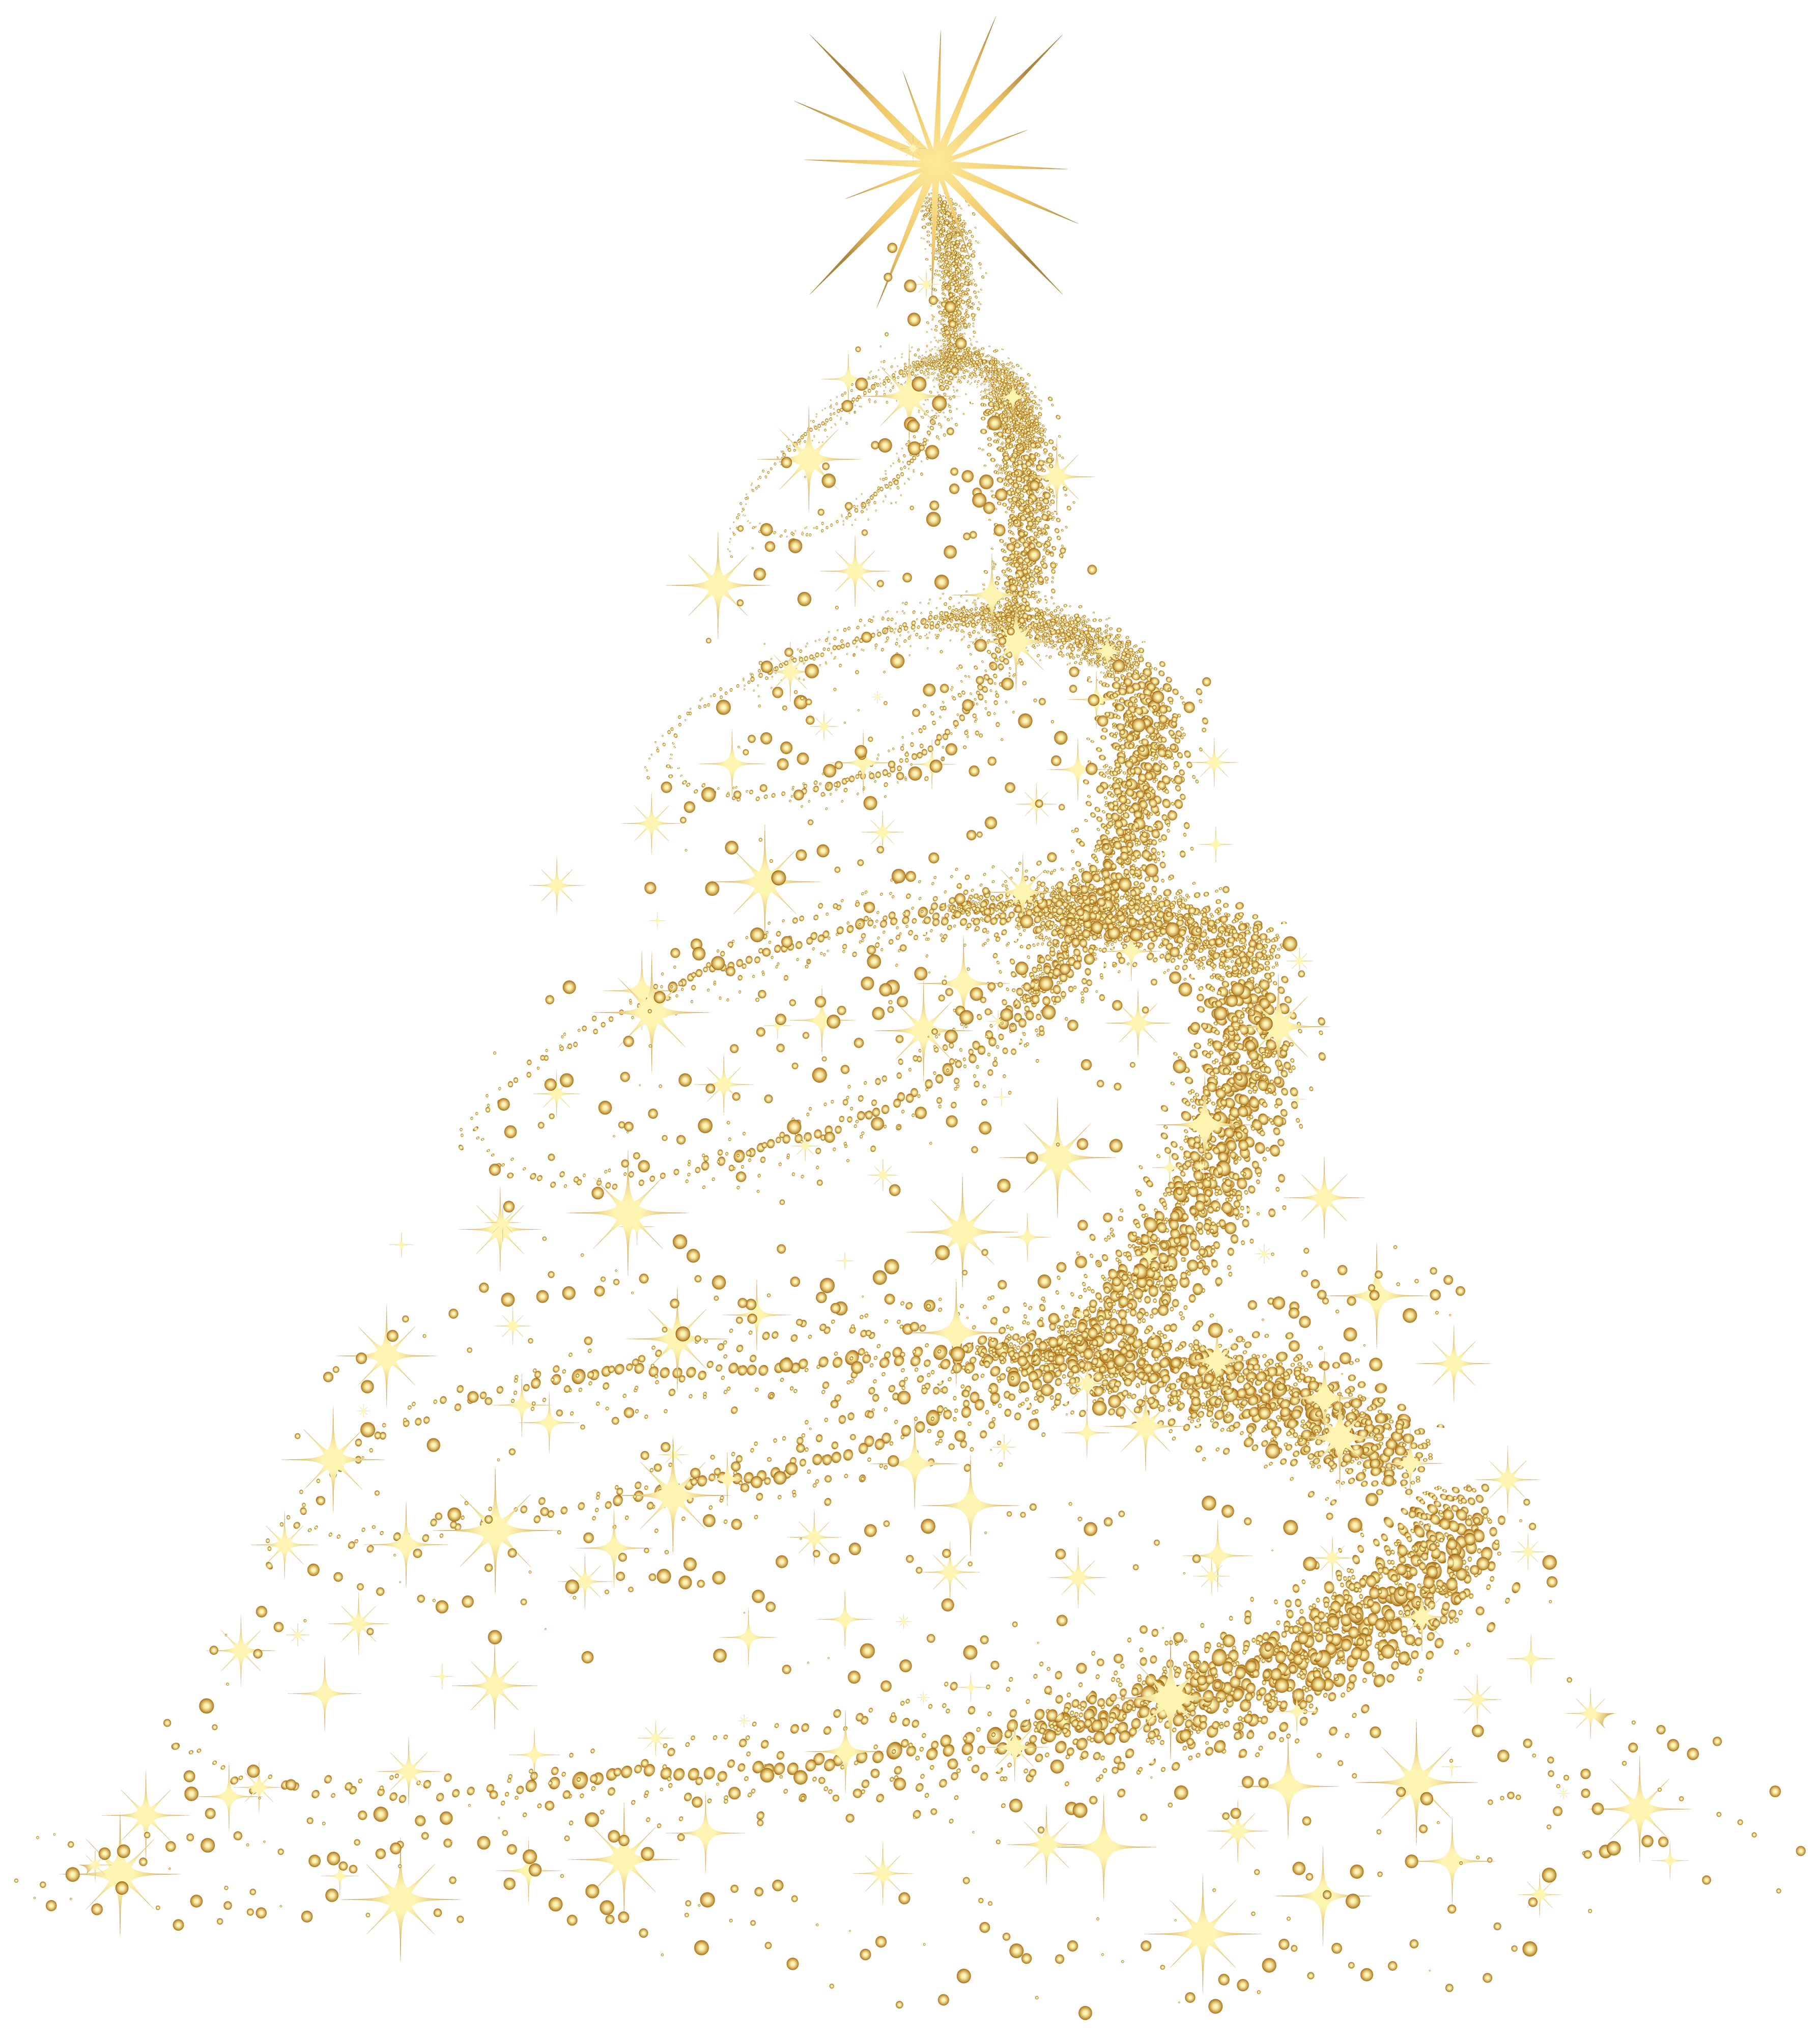 Deco Christmas Tree Transparent Png Clip Art Image Gallery Yopriceville High Quality Images And Transparent Png Free Clipart